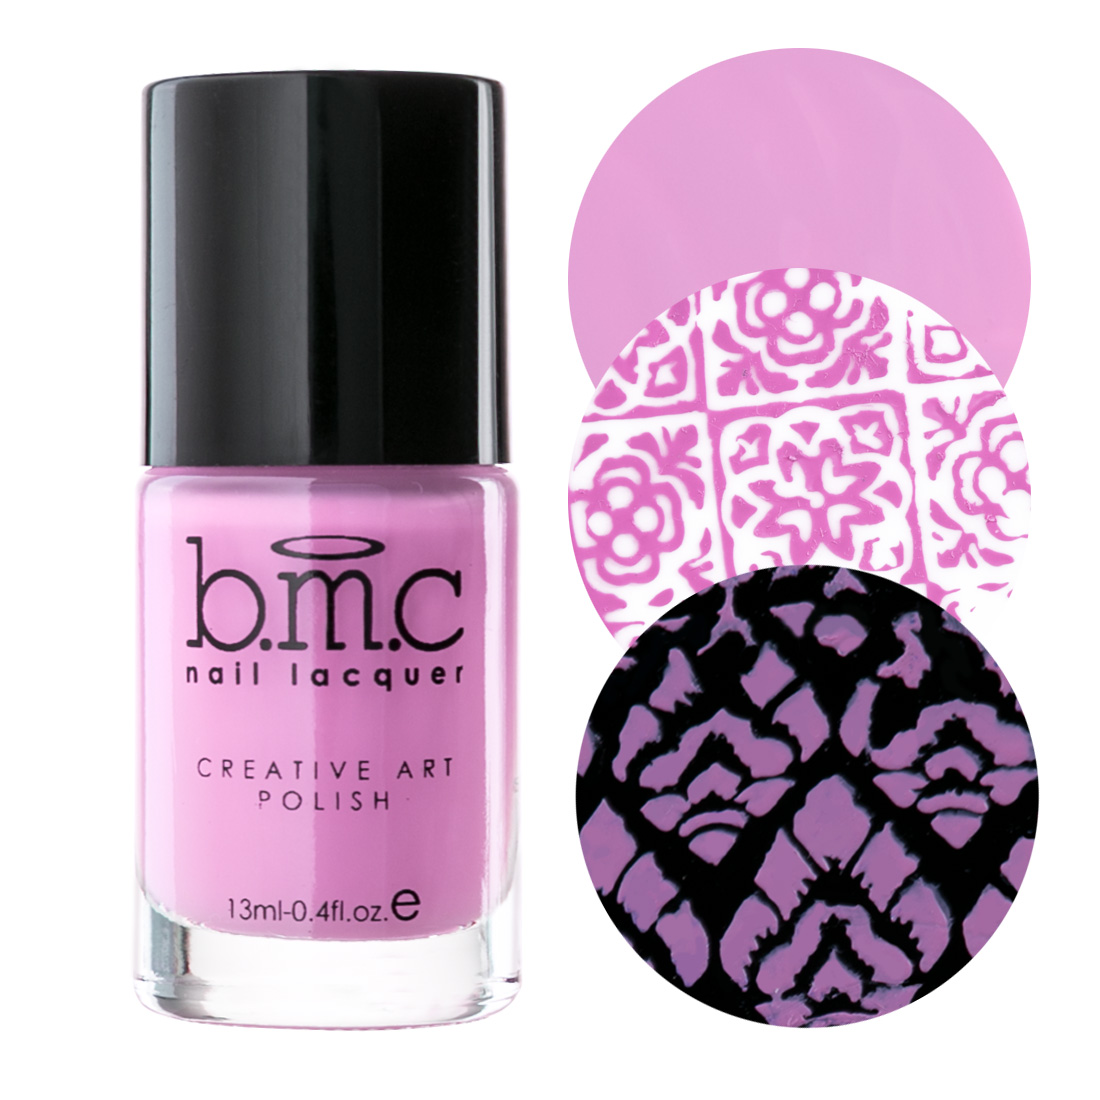 BMC 3pc Perennials Cream Nail Stamping Polish Set - Spring Inspired Highly Pigmented Fingernail Art Lacquer for DIY Manicures & Pedicures - Assorted Packs : Dusty Pink, Salmon Pink, Dark Purple